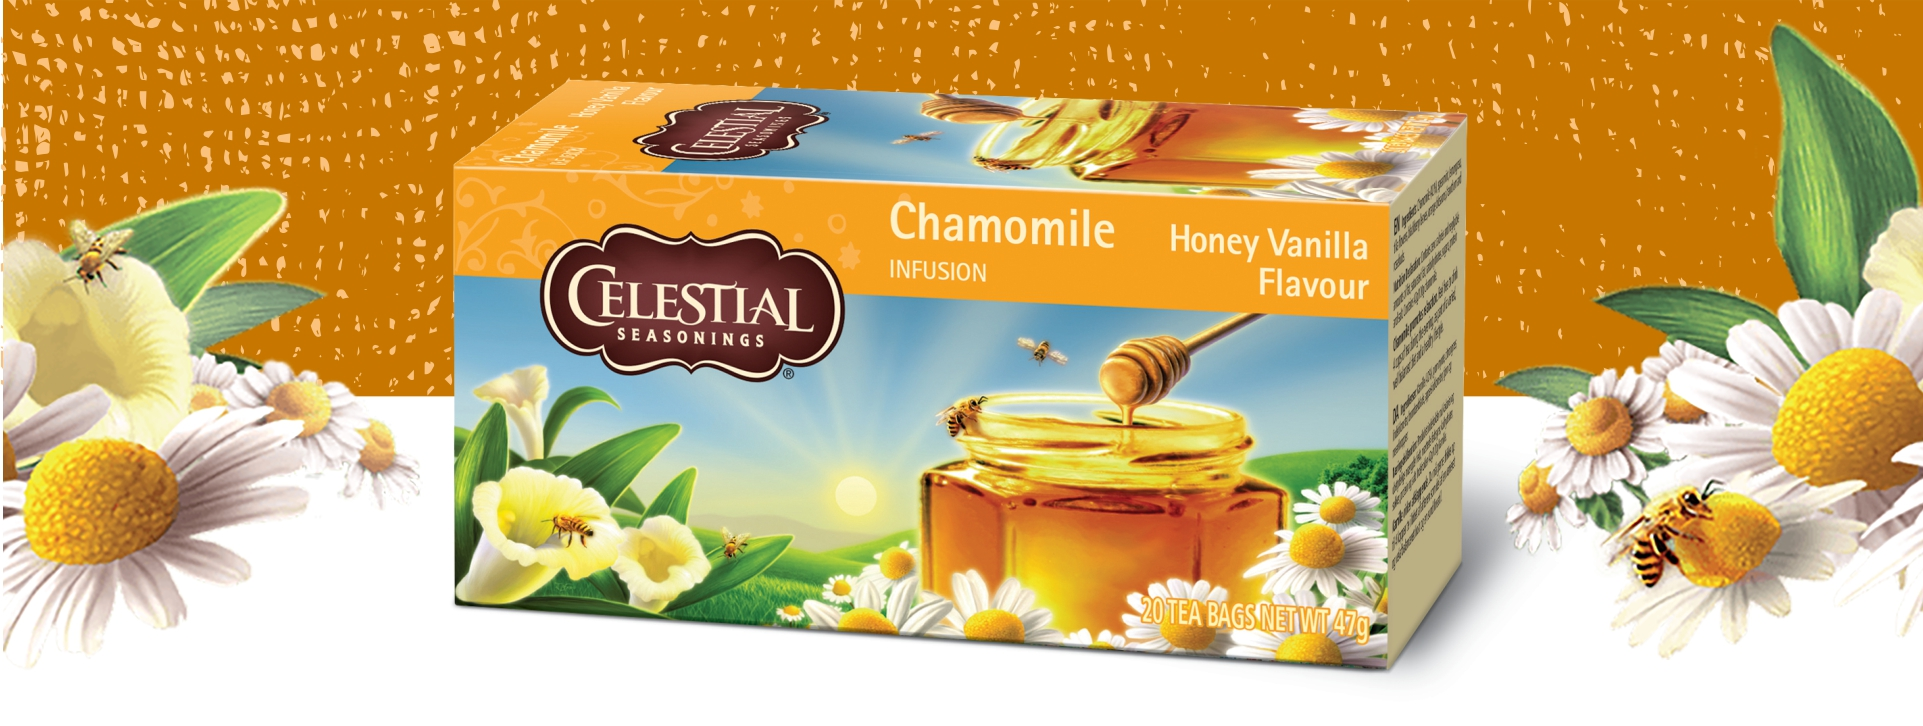 chamomile_honey_vanille_titel